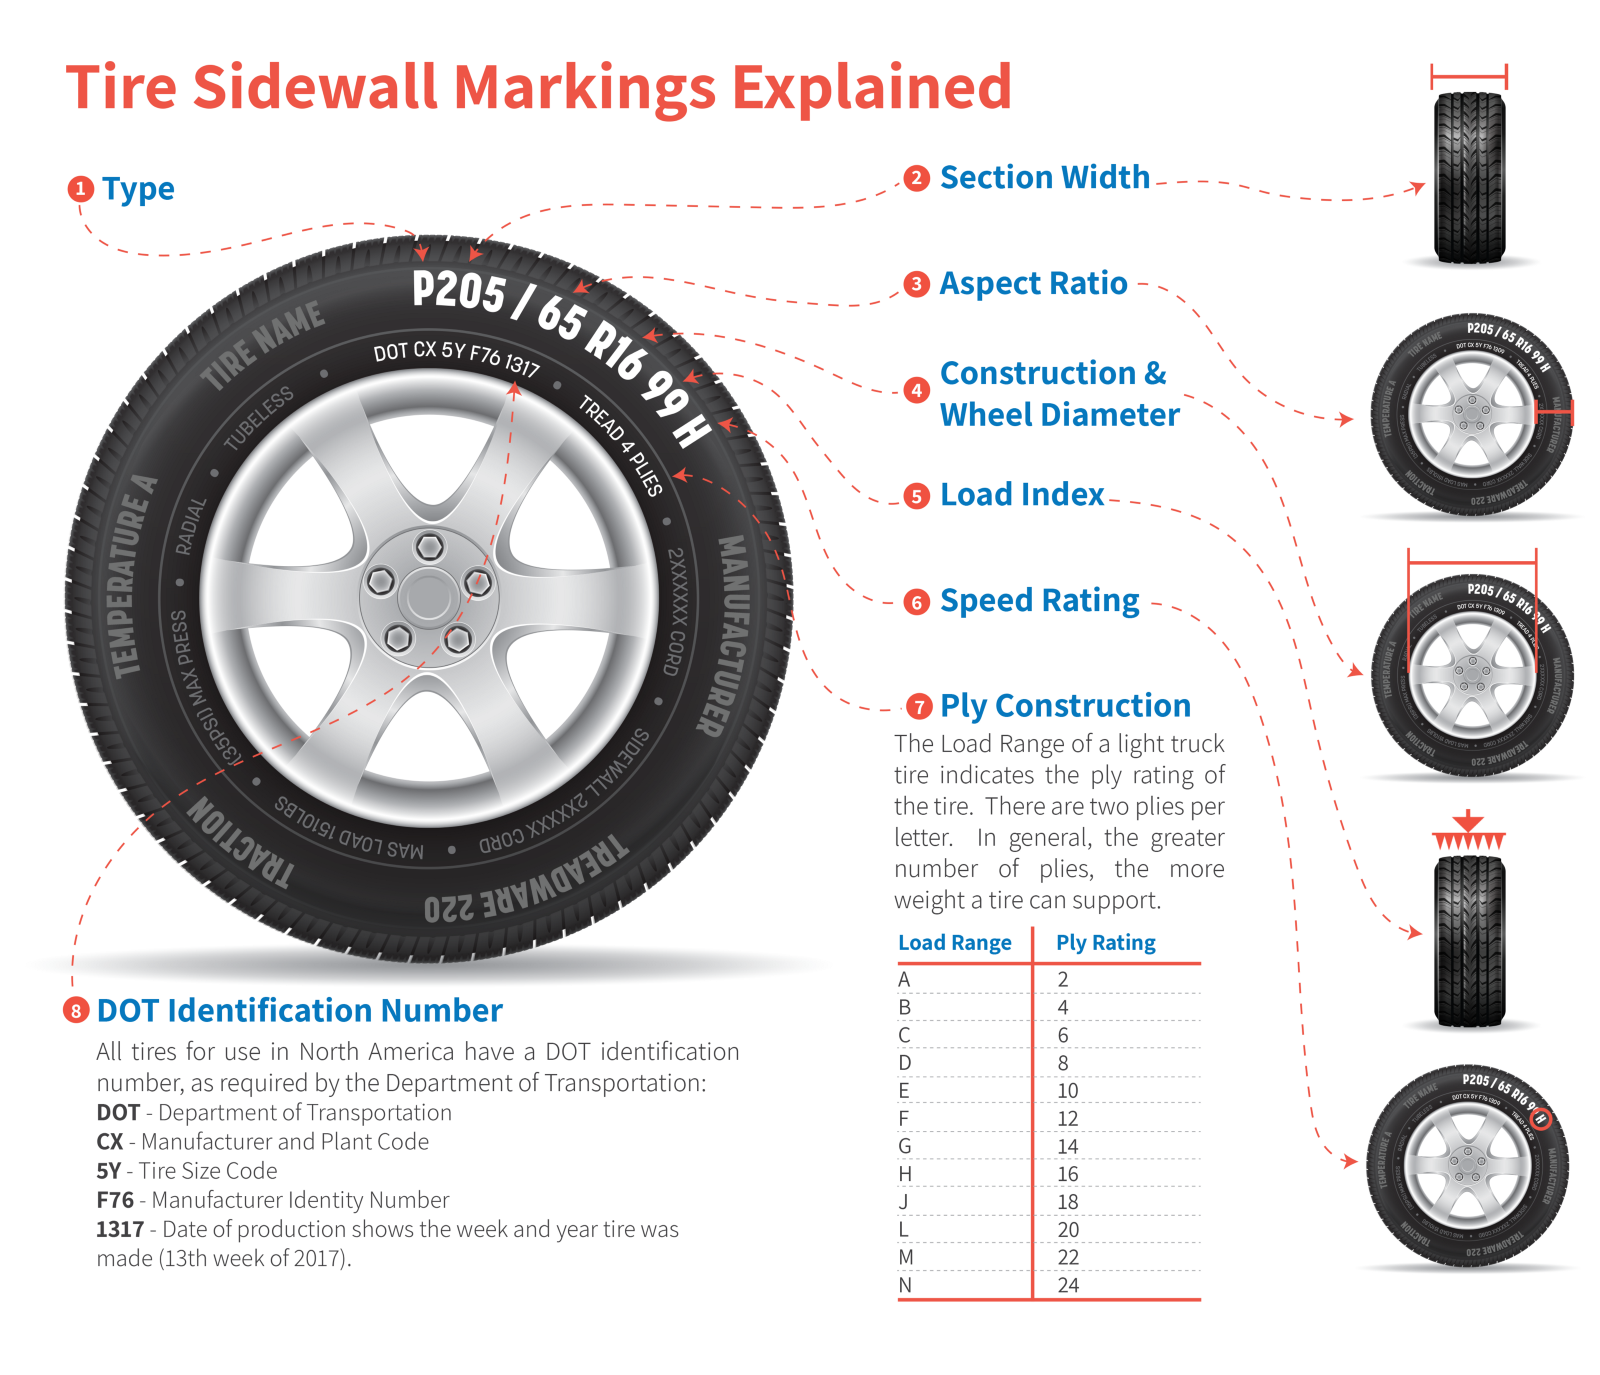 How To Read A Tire >> Tires 101 How To Read A Tire Sidewall American Tire Distributors